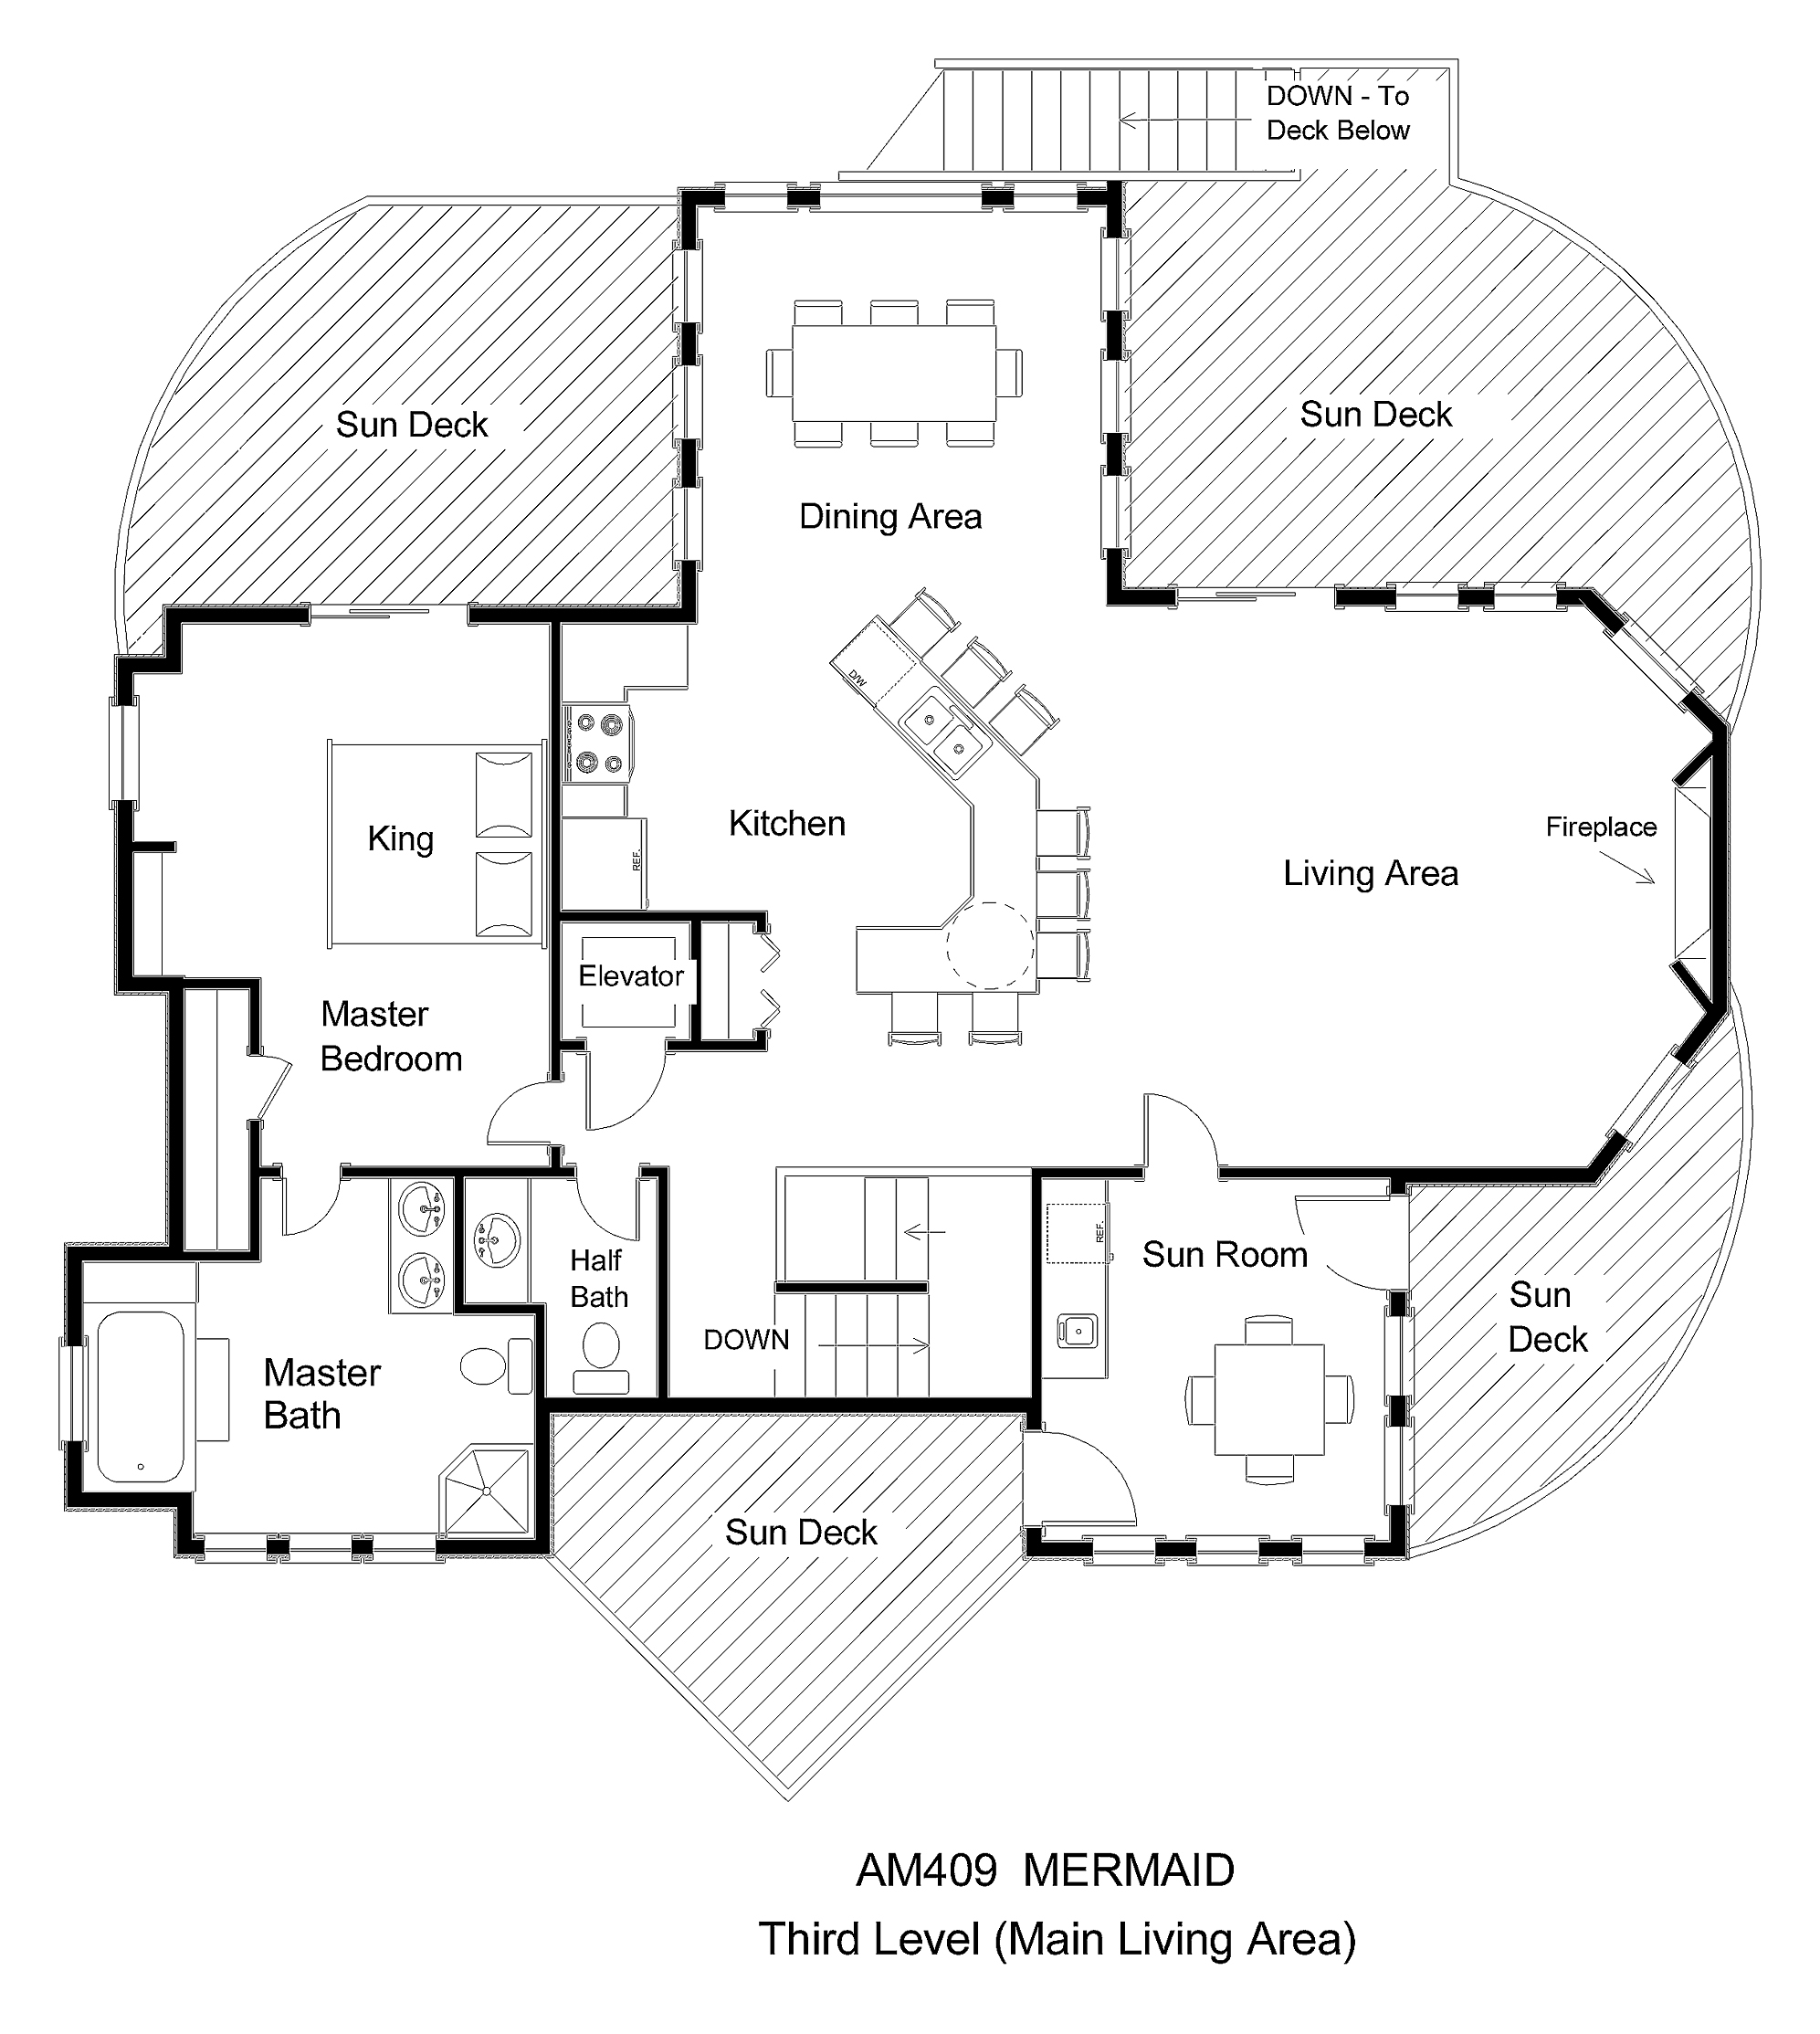 hight resolution of am409 mermaid floor plan level 3 jpg